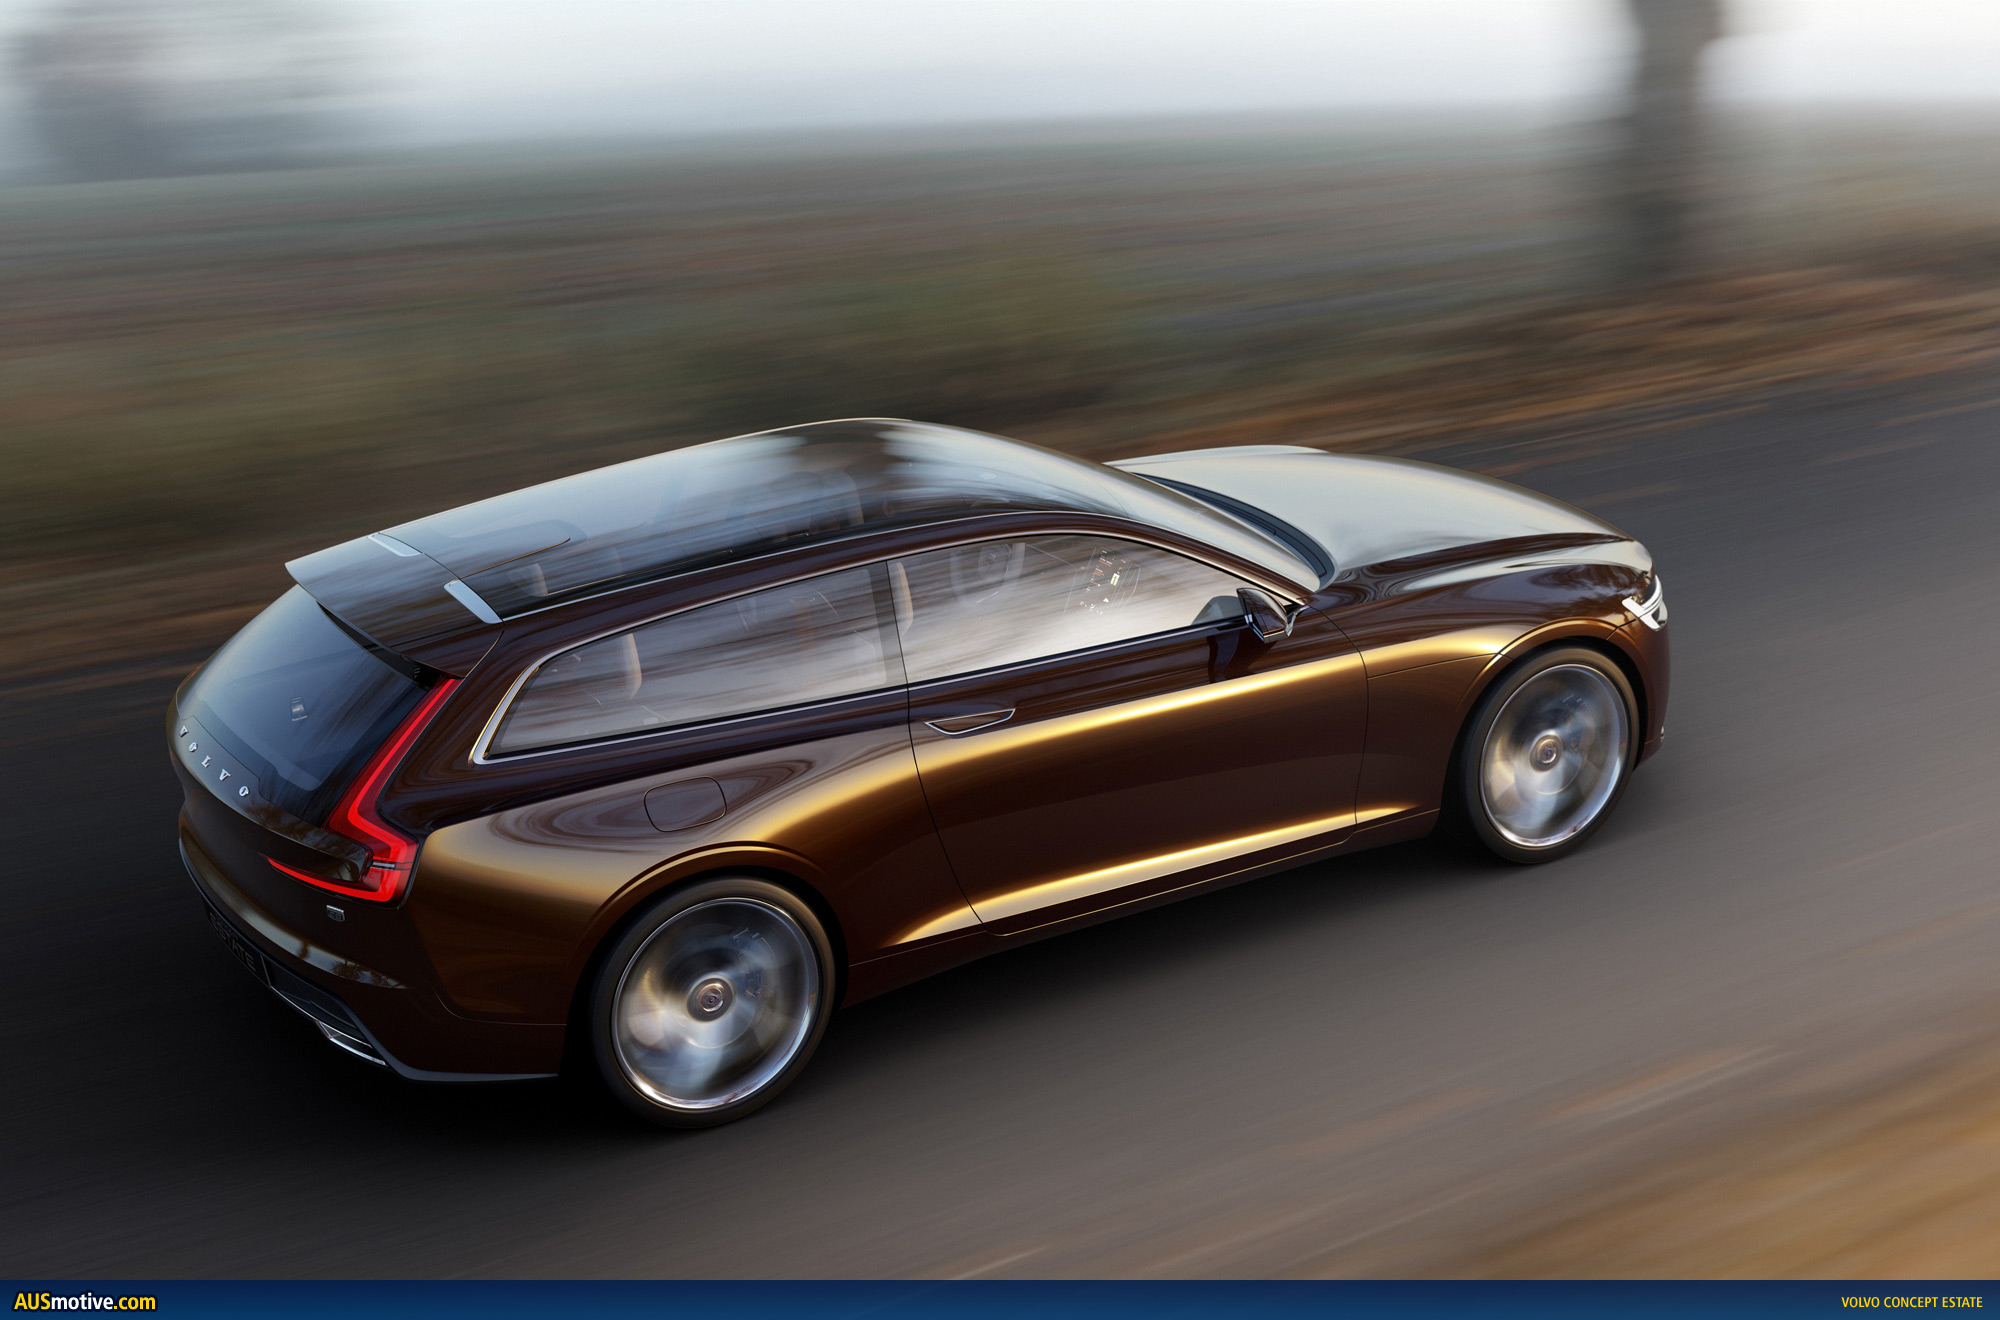 AUSmotive.com » Volvo Concept Estate revealed